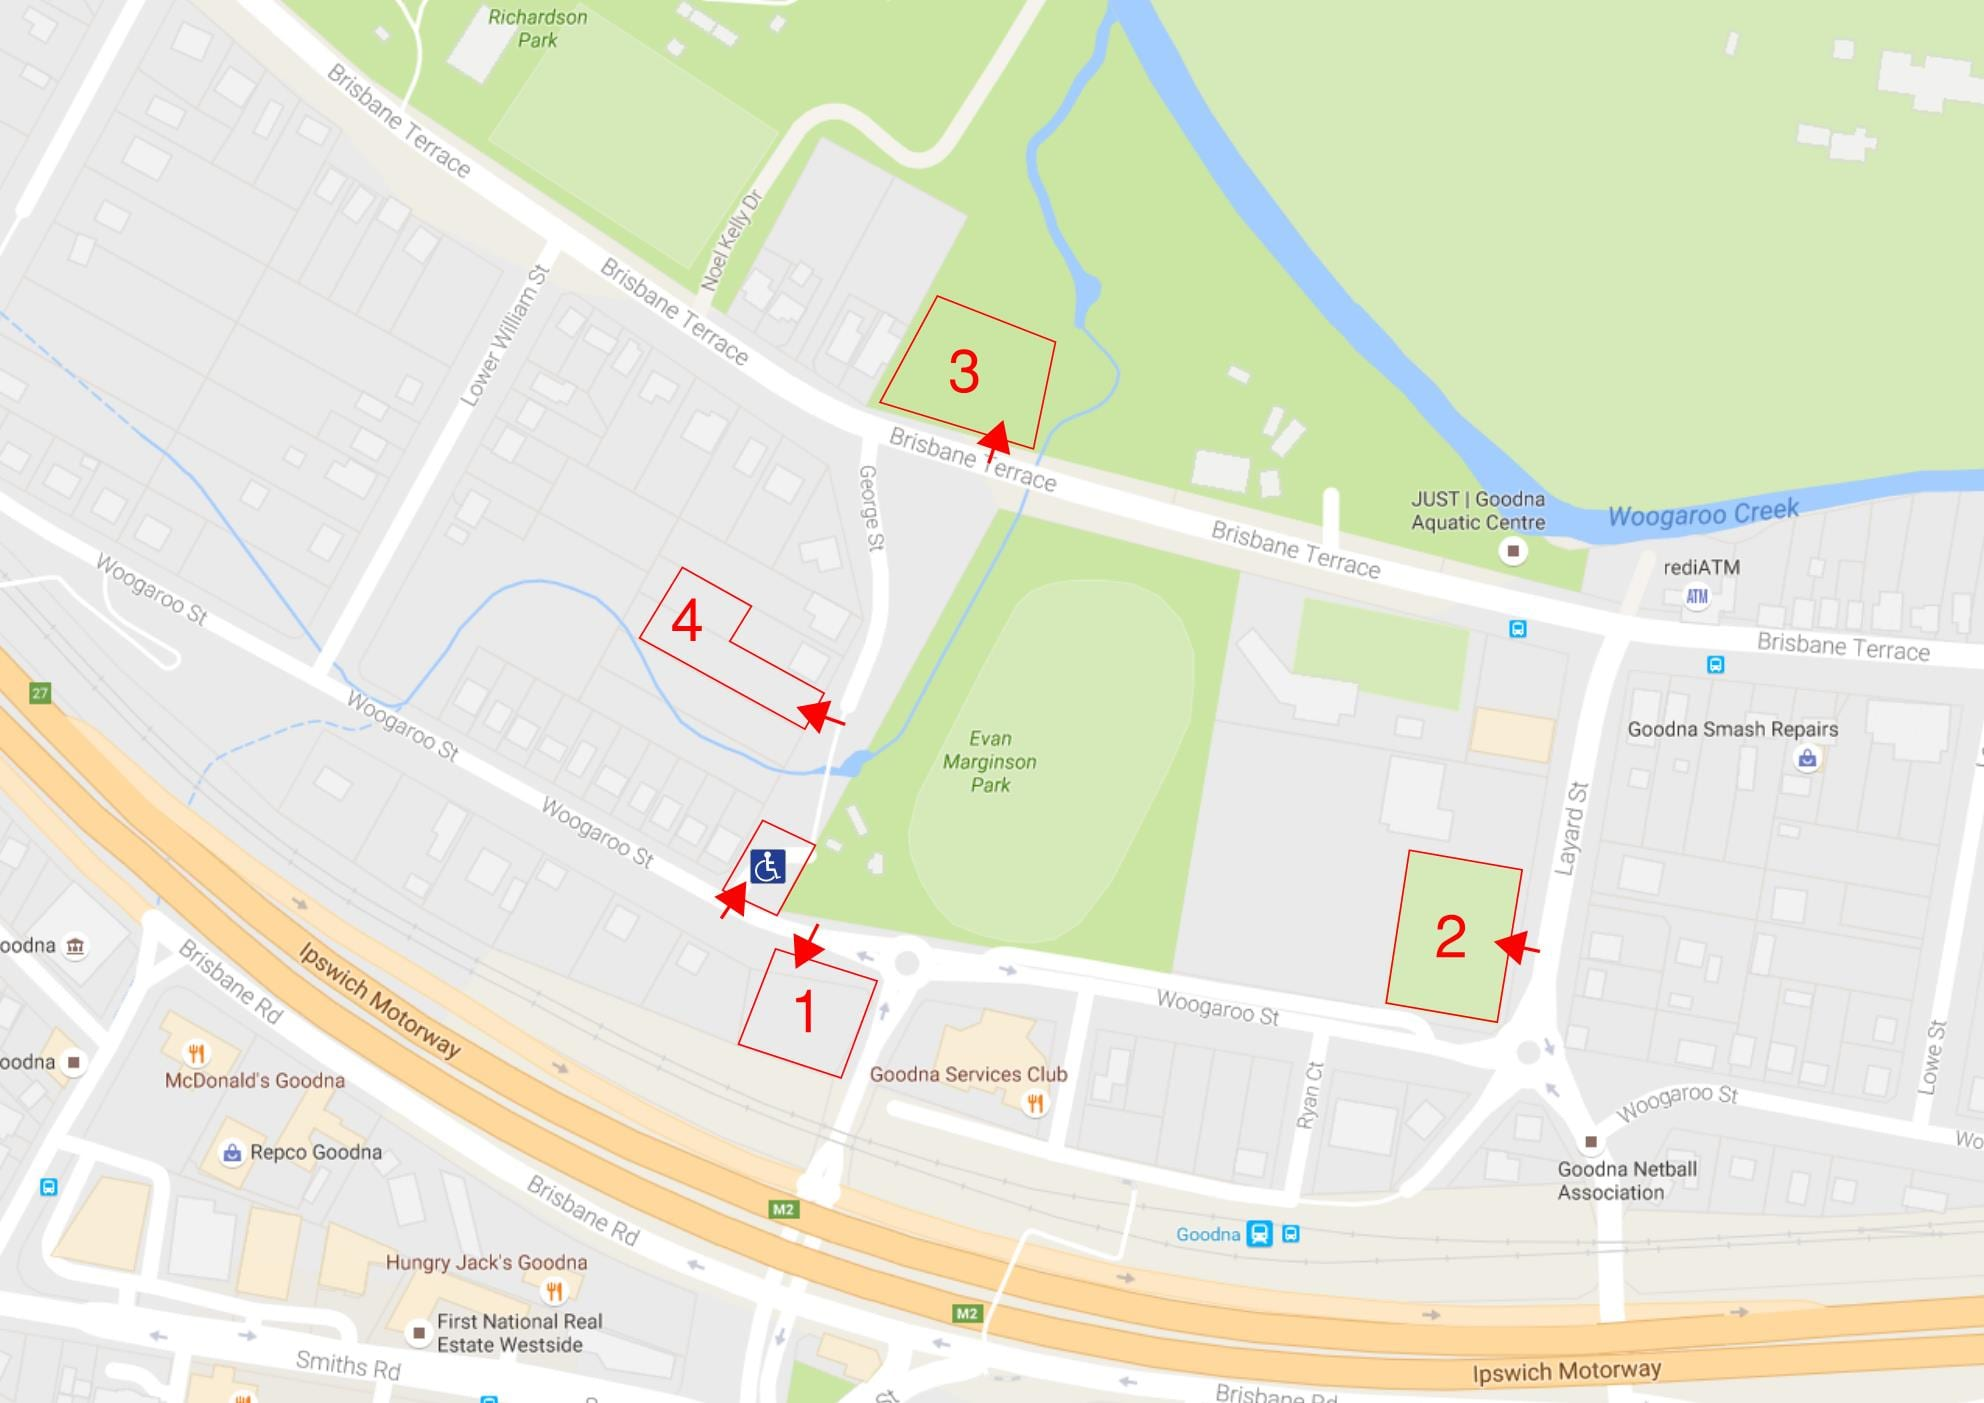 Car parking Map